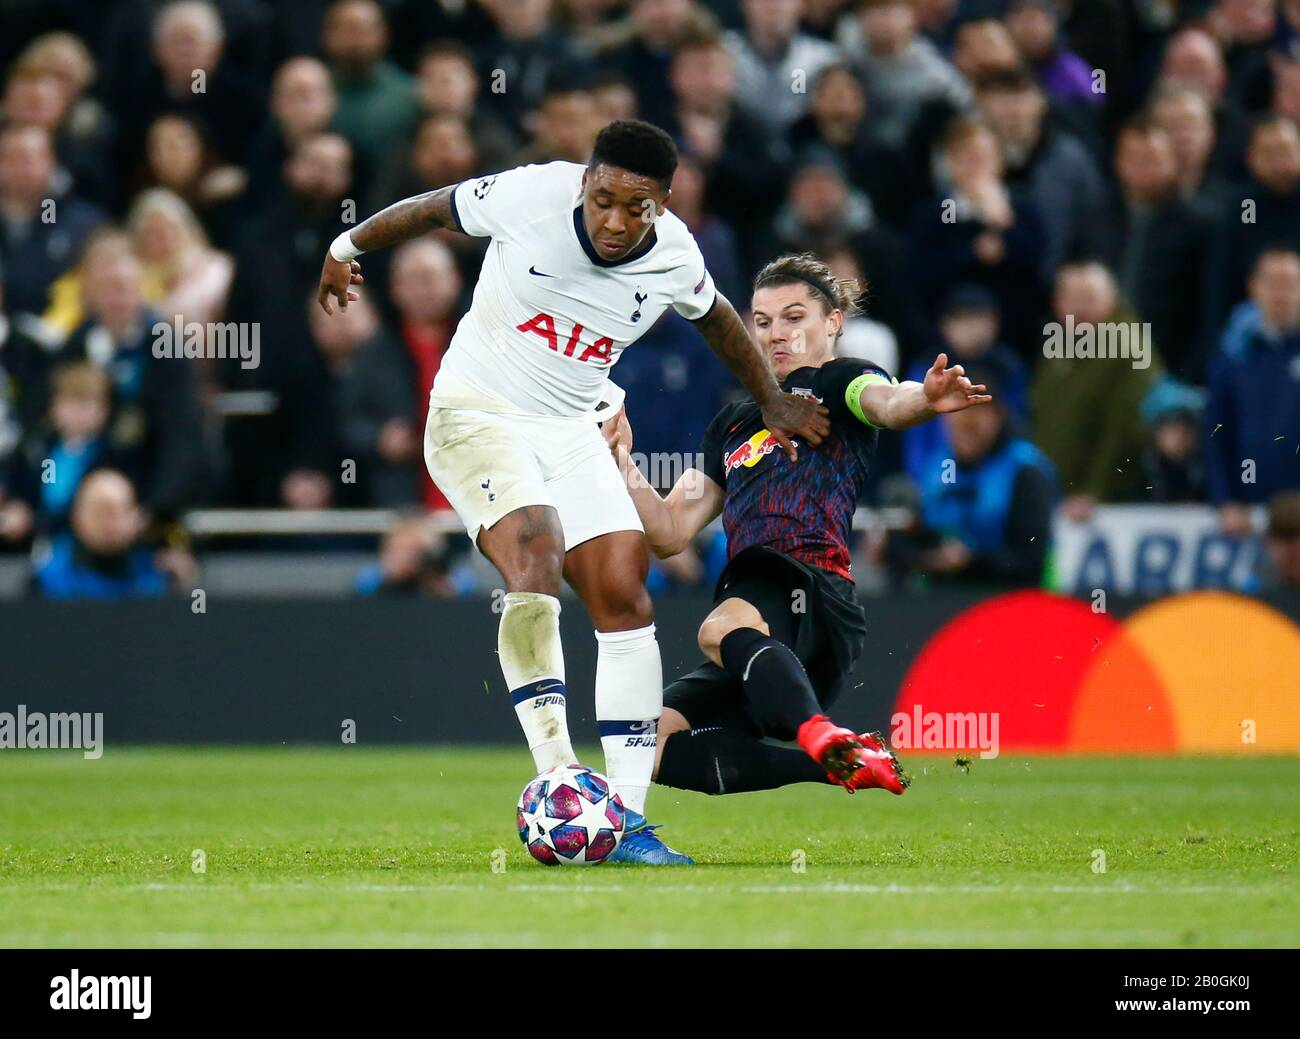 London United Kingdom February 19 L R Tottenham Hotspur S Steven Bergwijn Gets Tackled By Marcel Sabitzer Of Rb Leipzig During Champion League Round Stock Photo Alamy